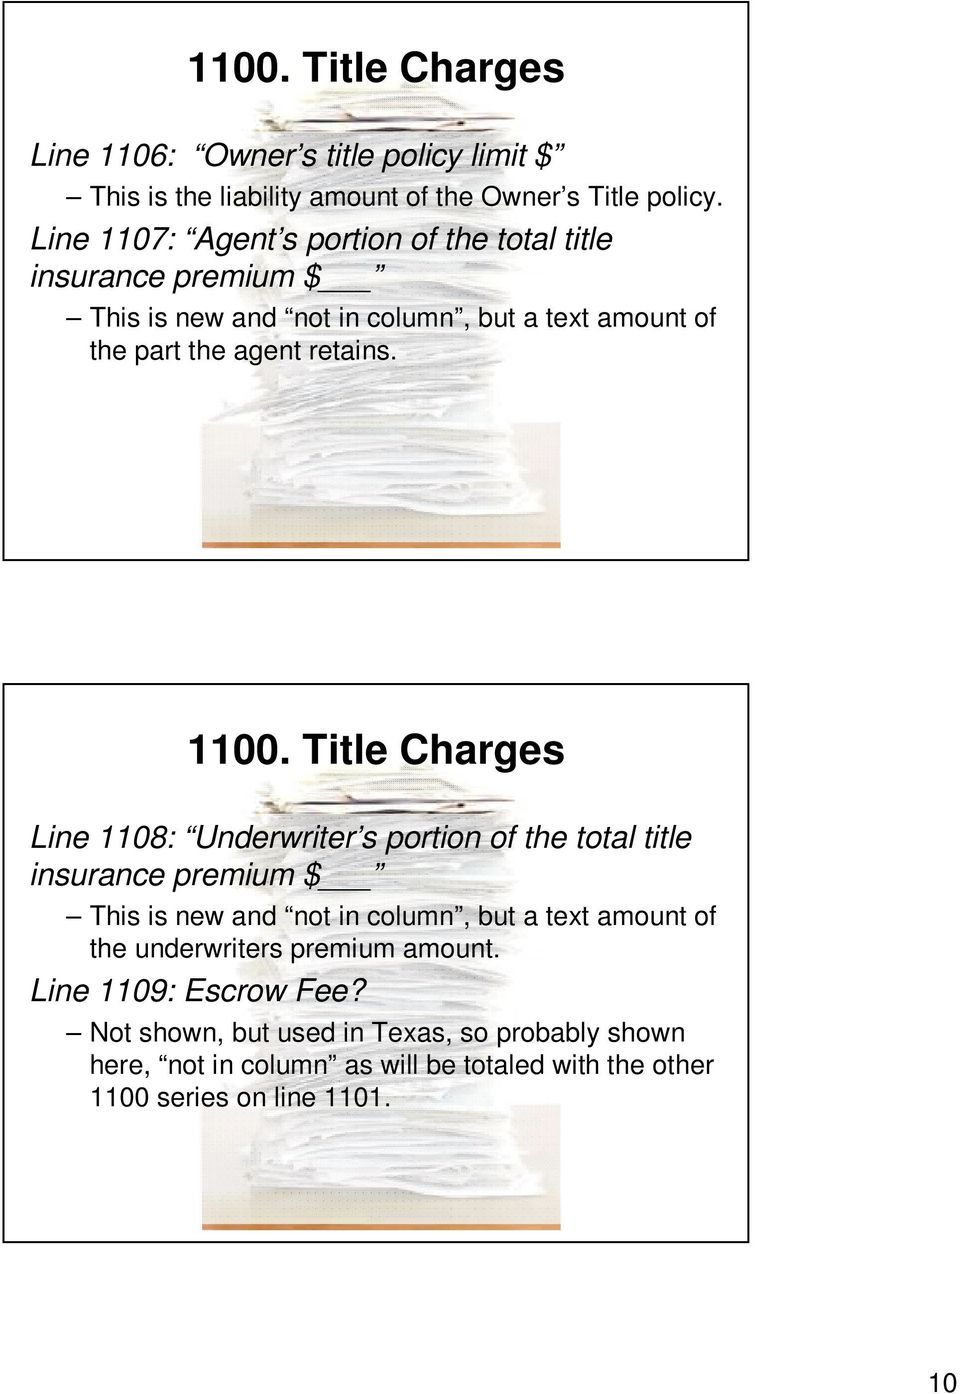 1100. Title Charges Line 1108: Underwriter s portion of the total title insurance premium $ This is new and not in column, but a text amount of the